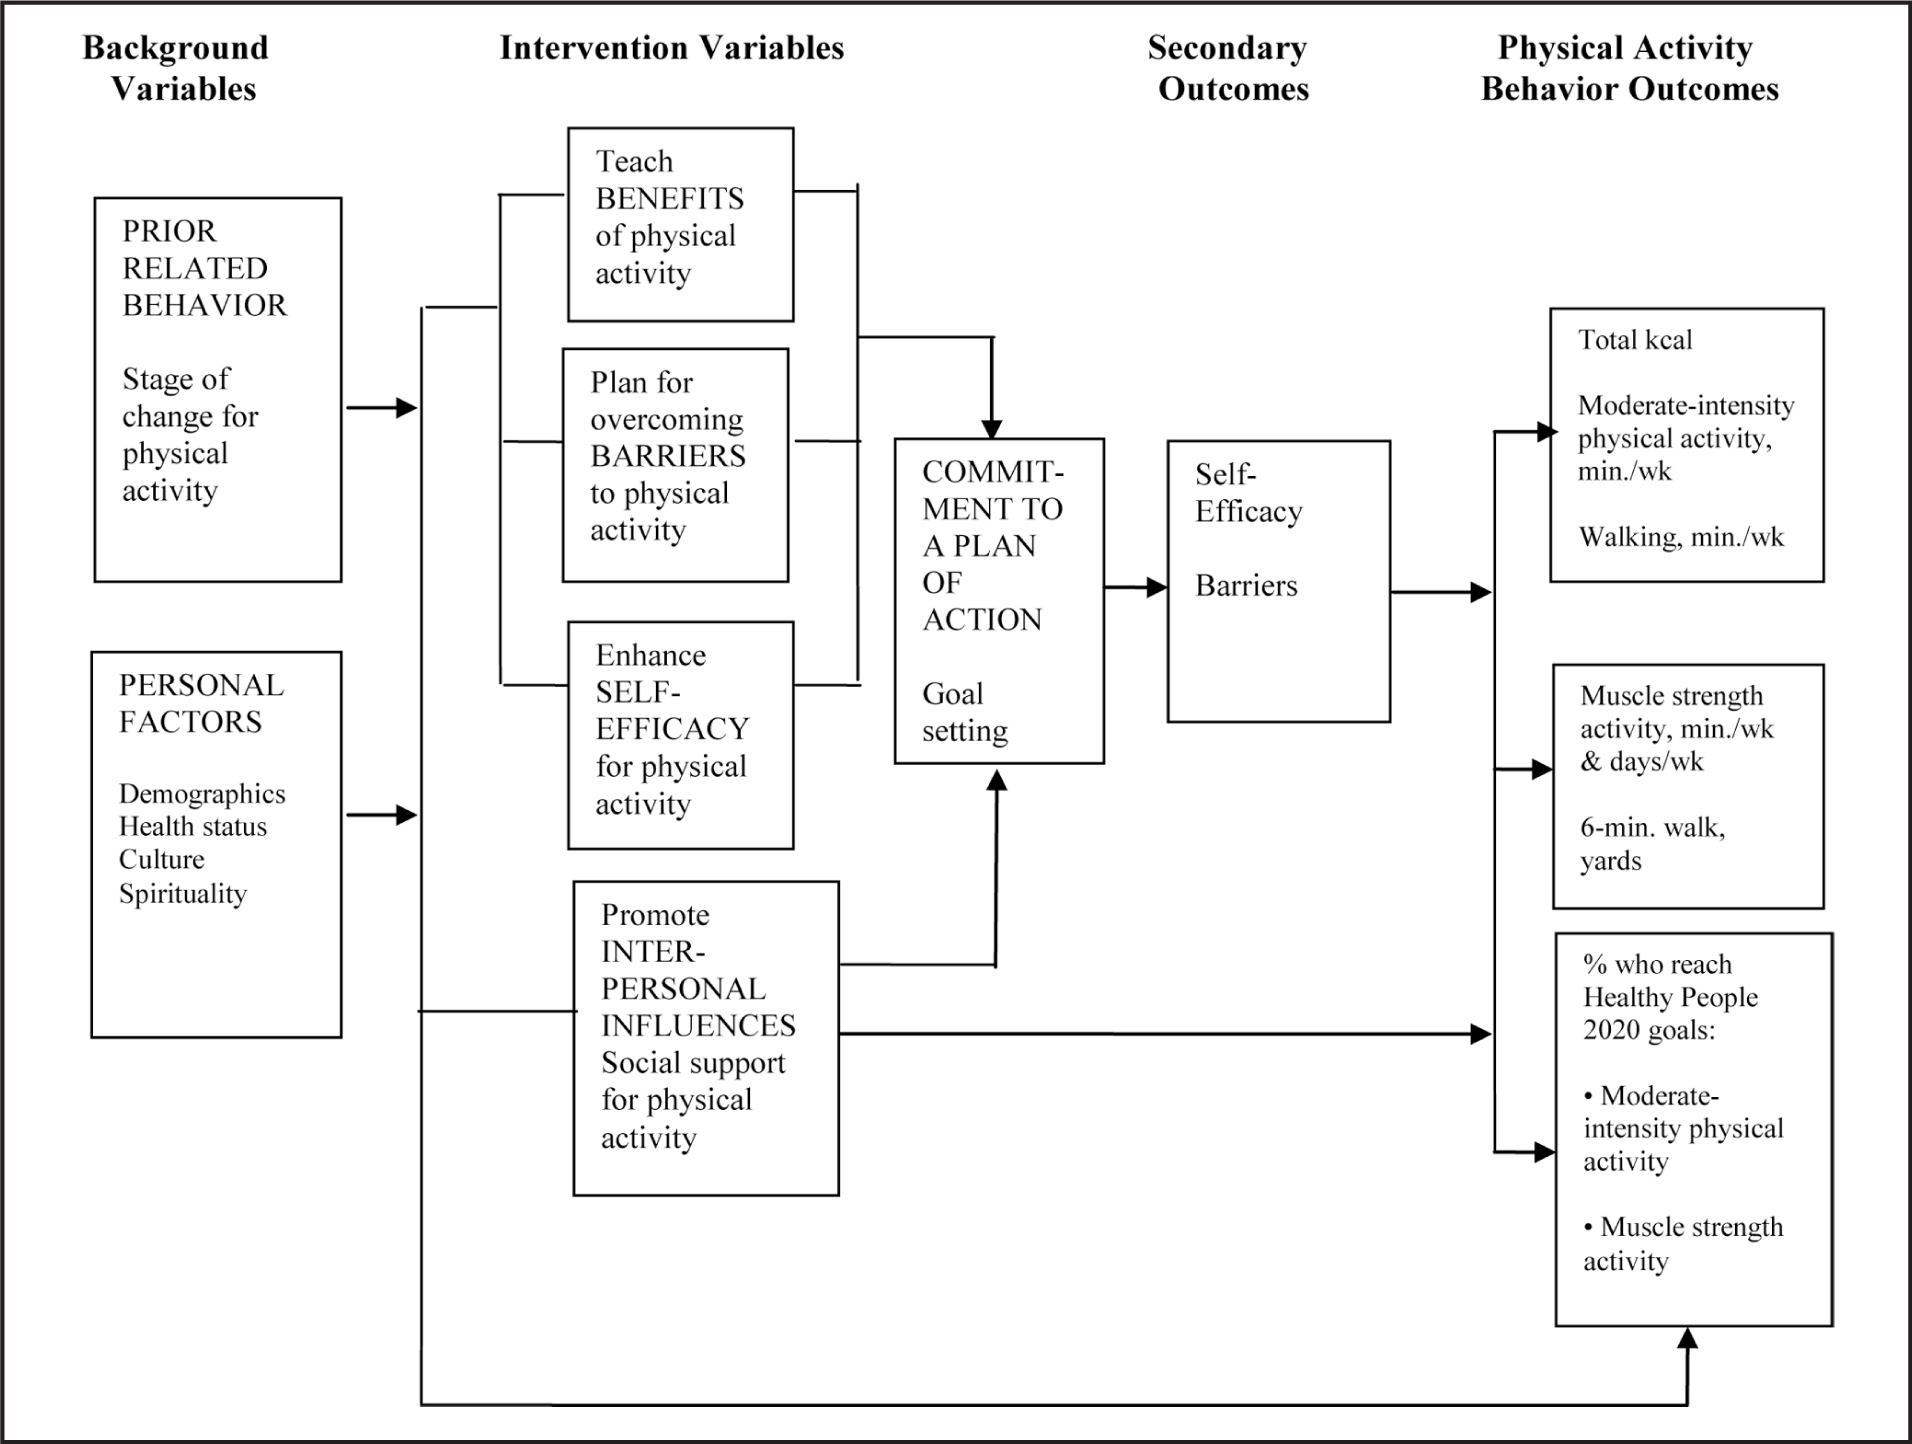 Physical Activity with Spiritual Strategies (PASS) intervention based on the Health Promotion Model (adapted).Note. min. = minutes; wk = week.